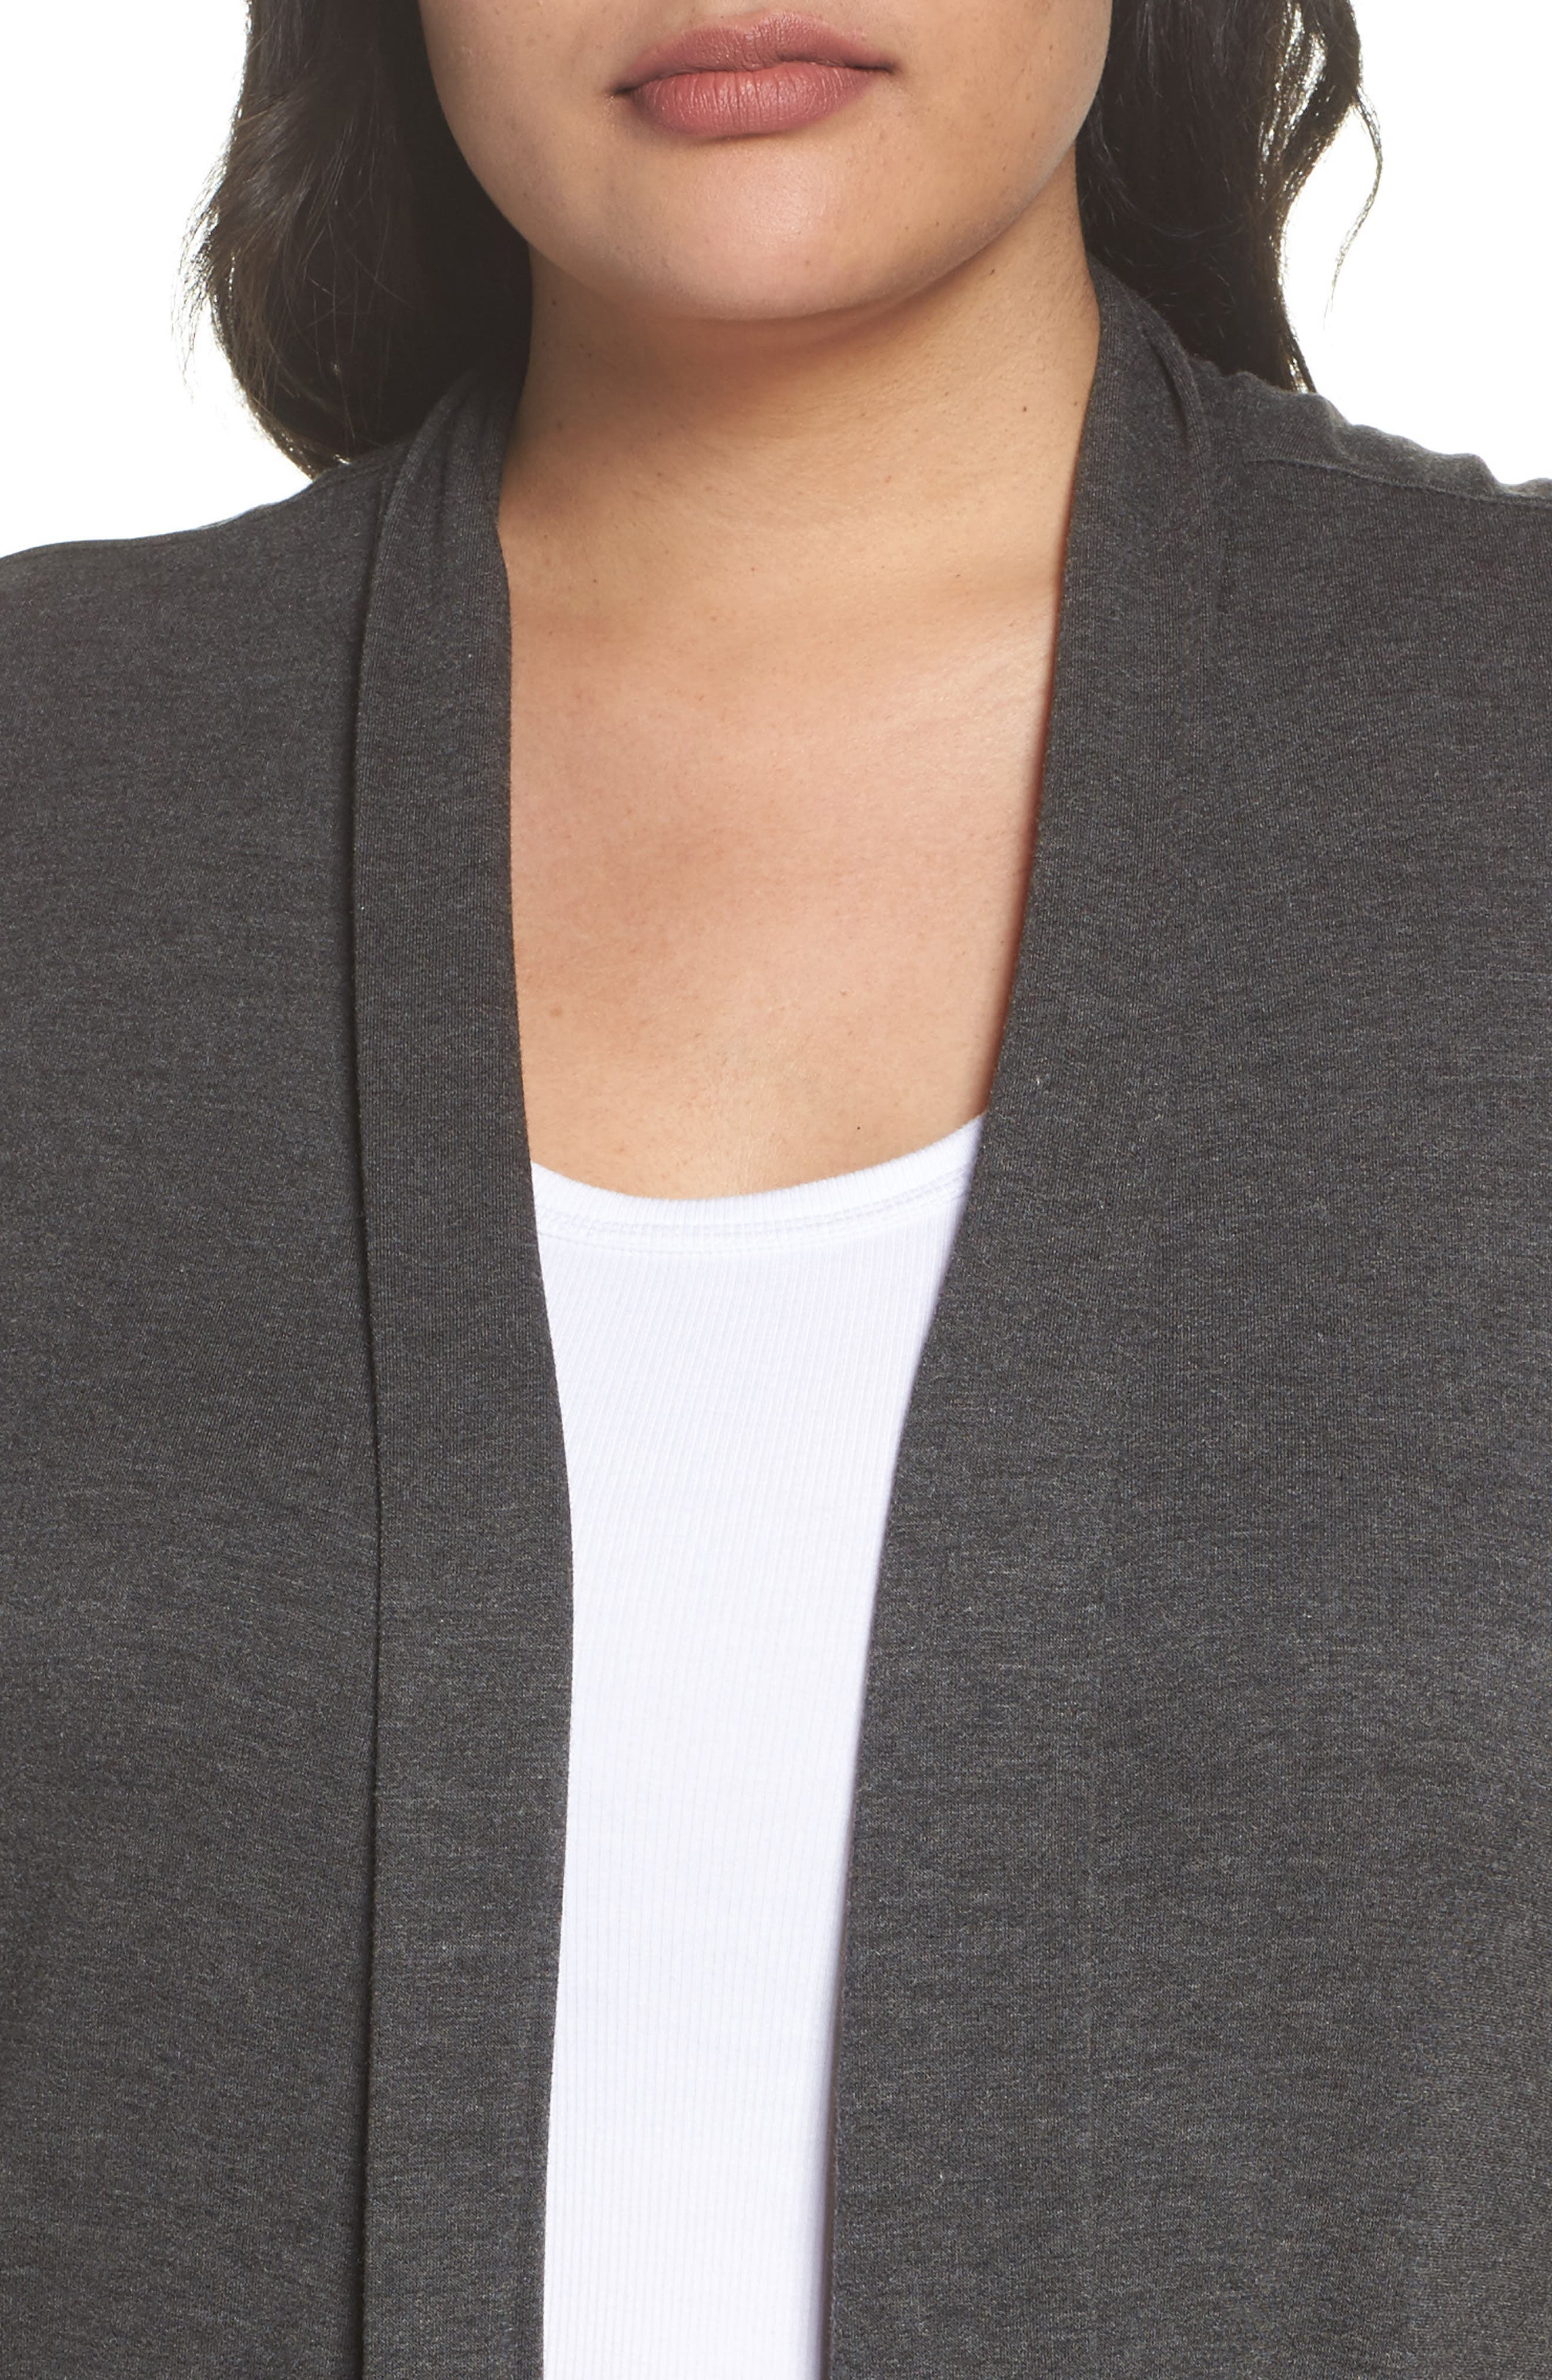 Two-Pocket Stretch Cardigan,                             Alternate thumbnail 4, color,                             Heather Charcoal